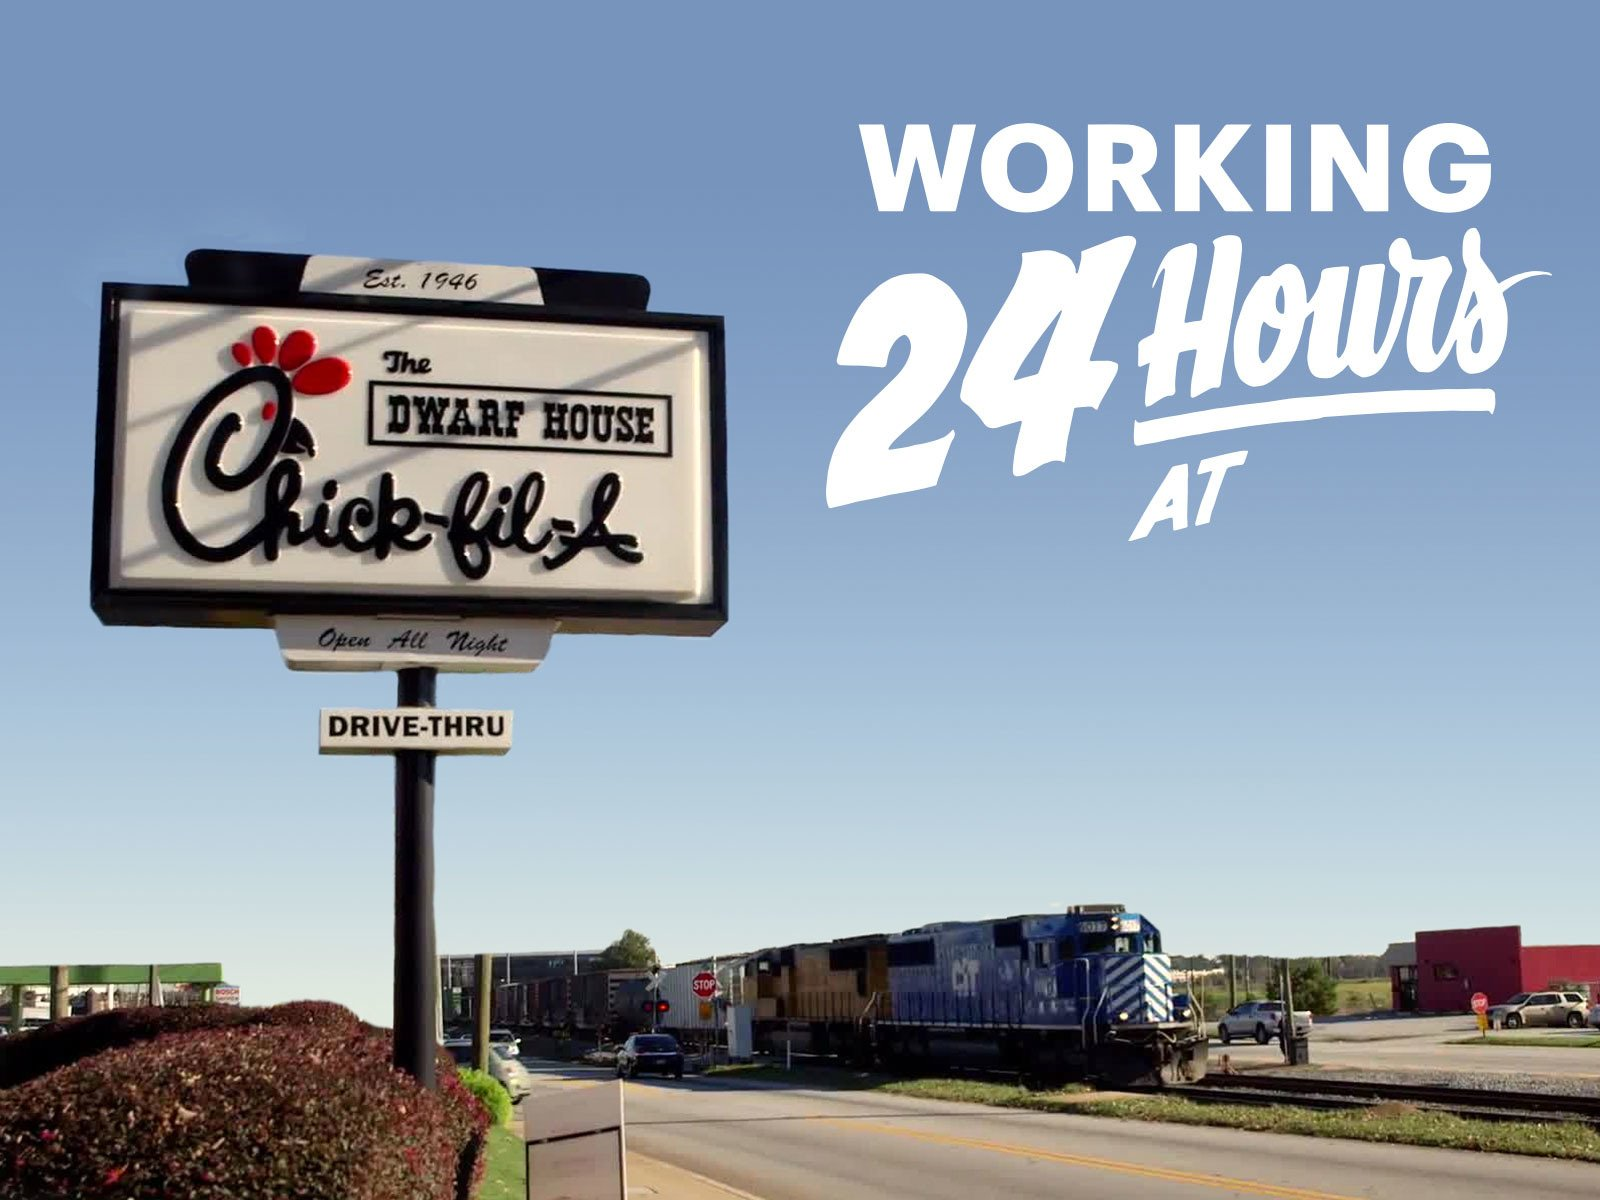 Working 24 Hours At... on Amazon Prime Video UK